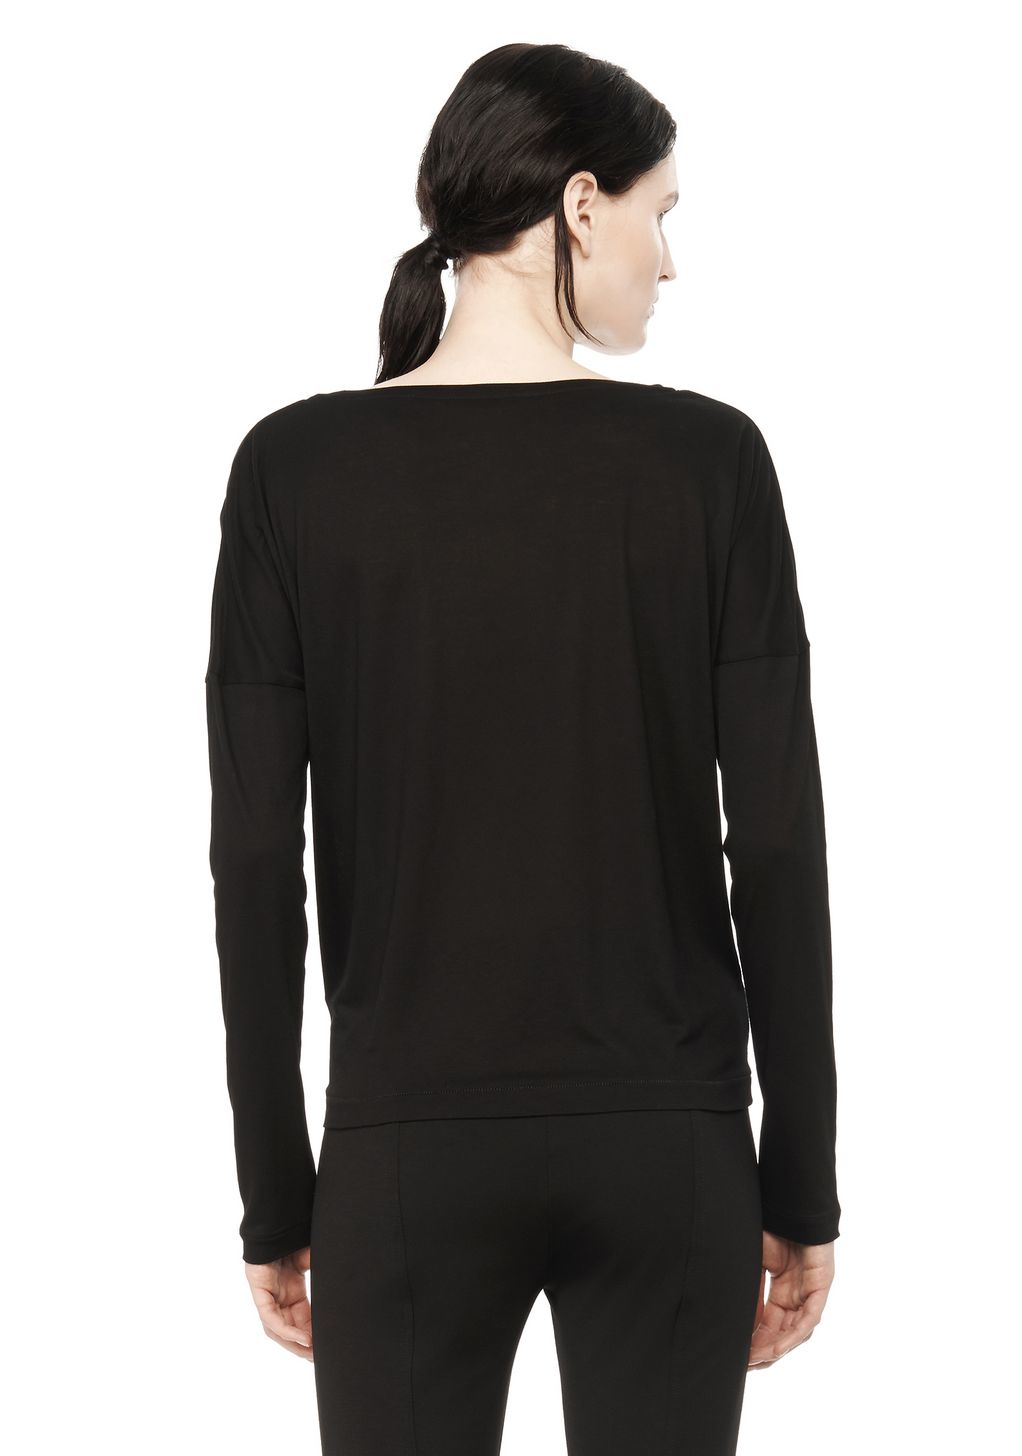 Alexander wang classic long sleeve low neck tee in black for Adam lippes women s long sleeve vee t shirt